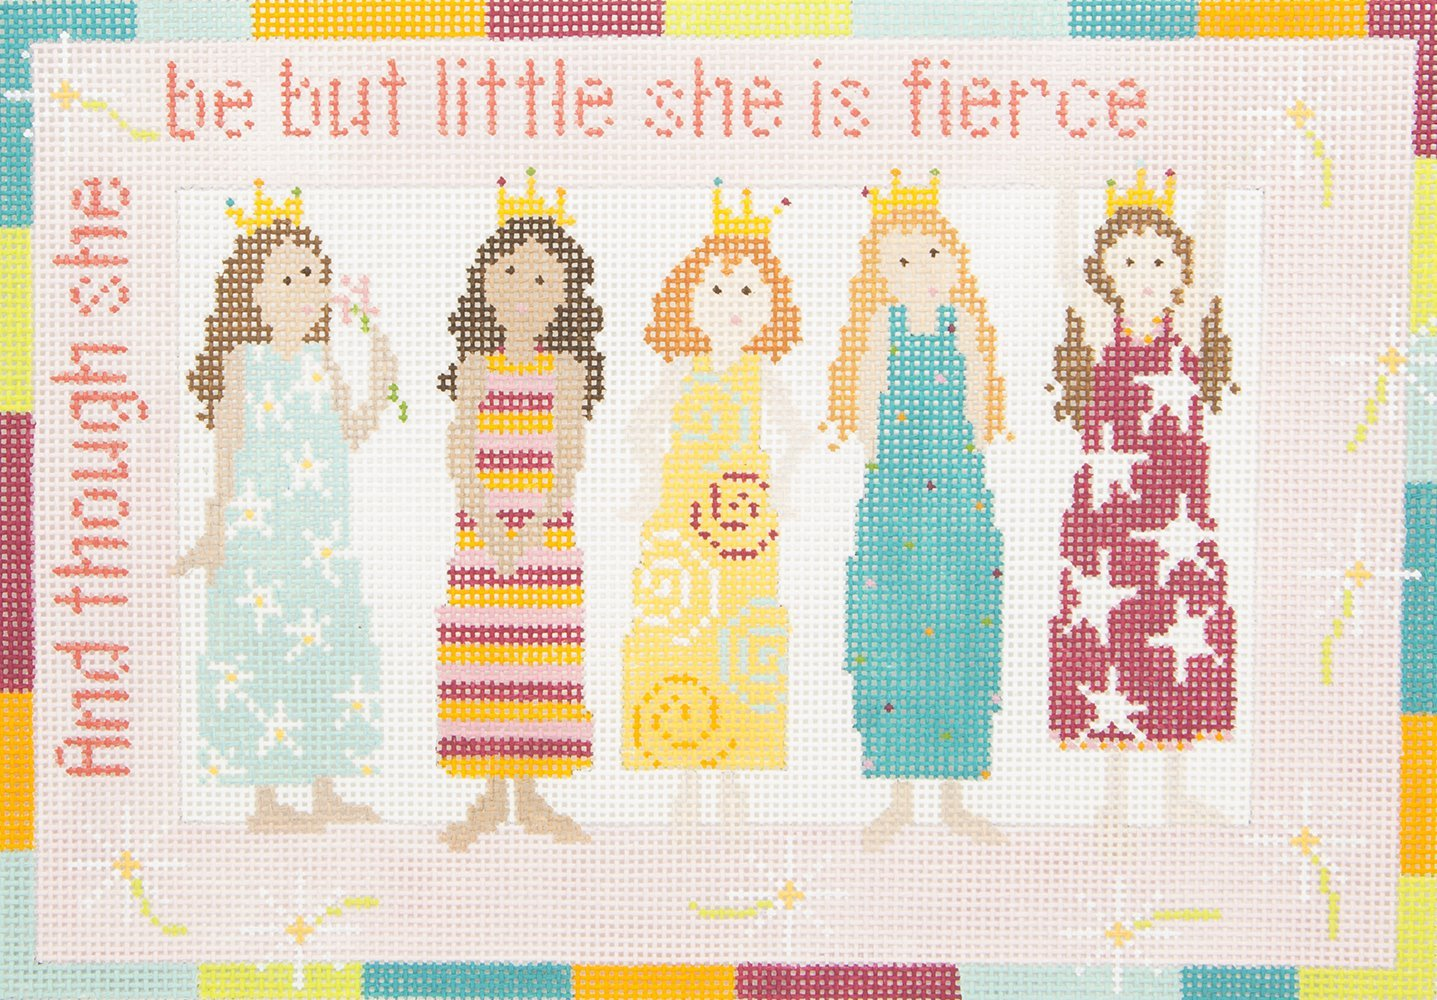 PF027 Princesses And though she may be little she is fierce JL Canvas Company